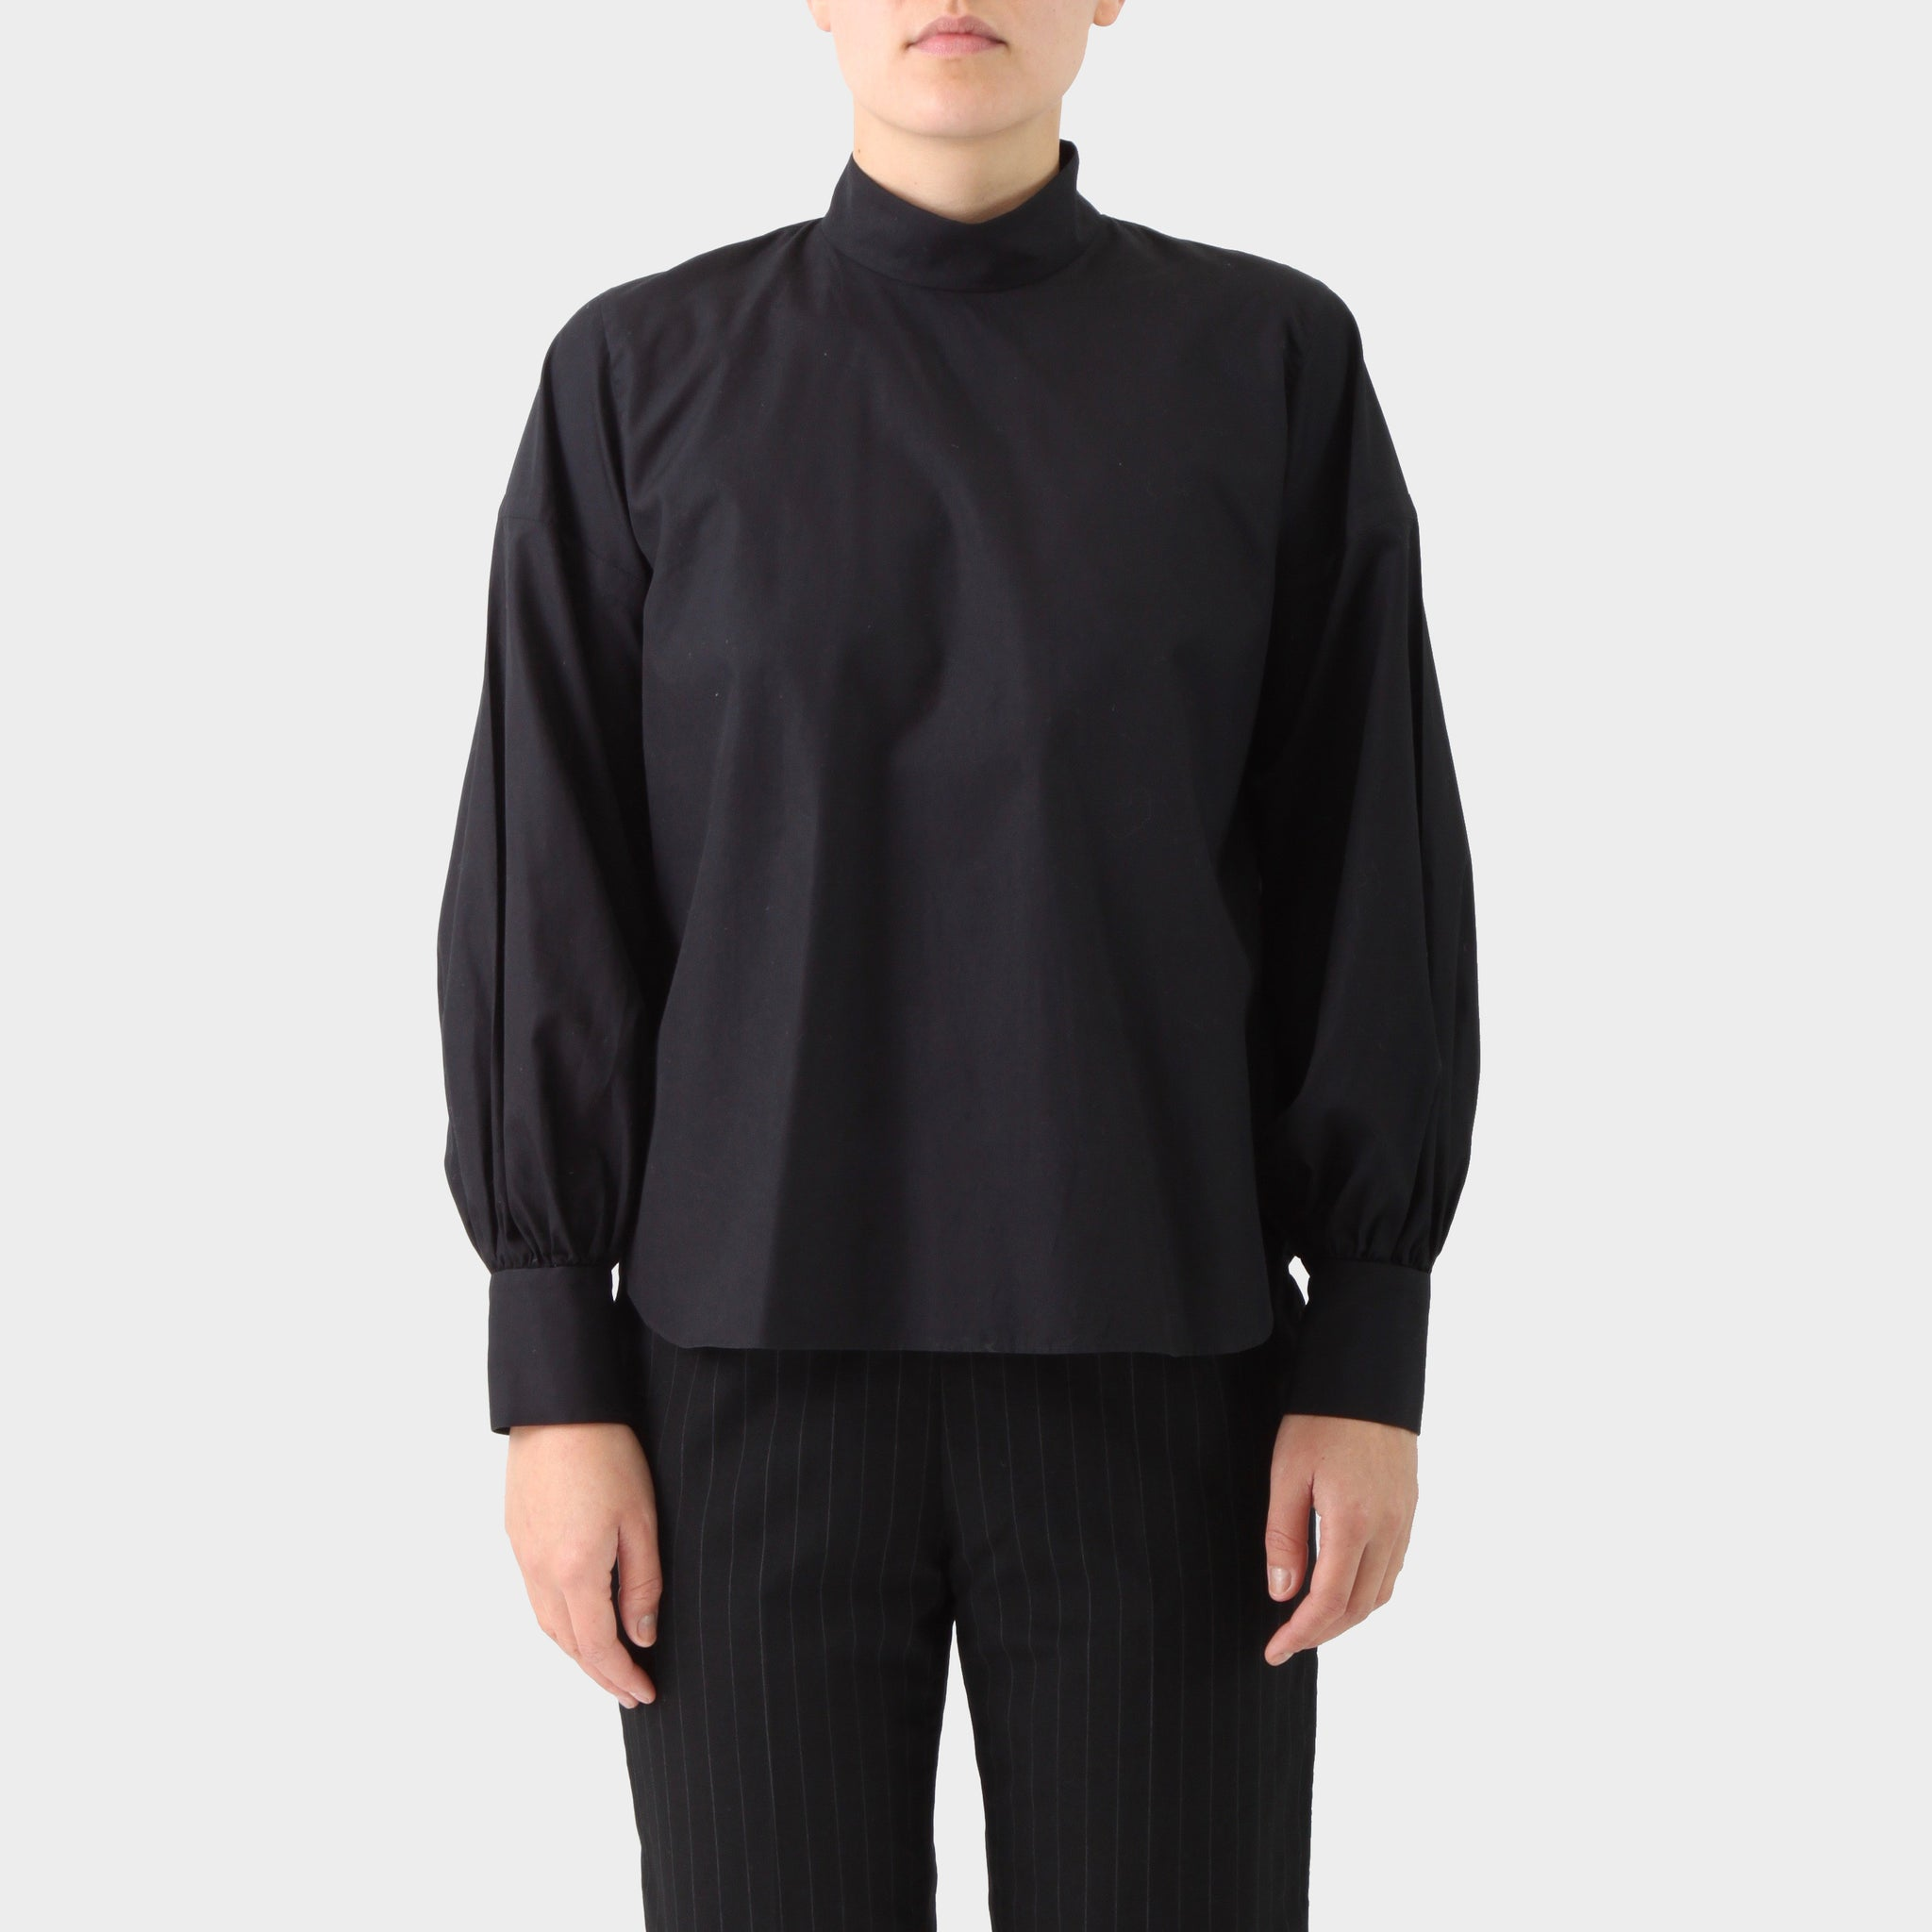 Noir Kei Ninomiya Black Mock Neck Tunic Top